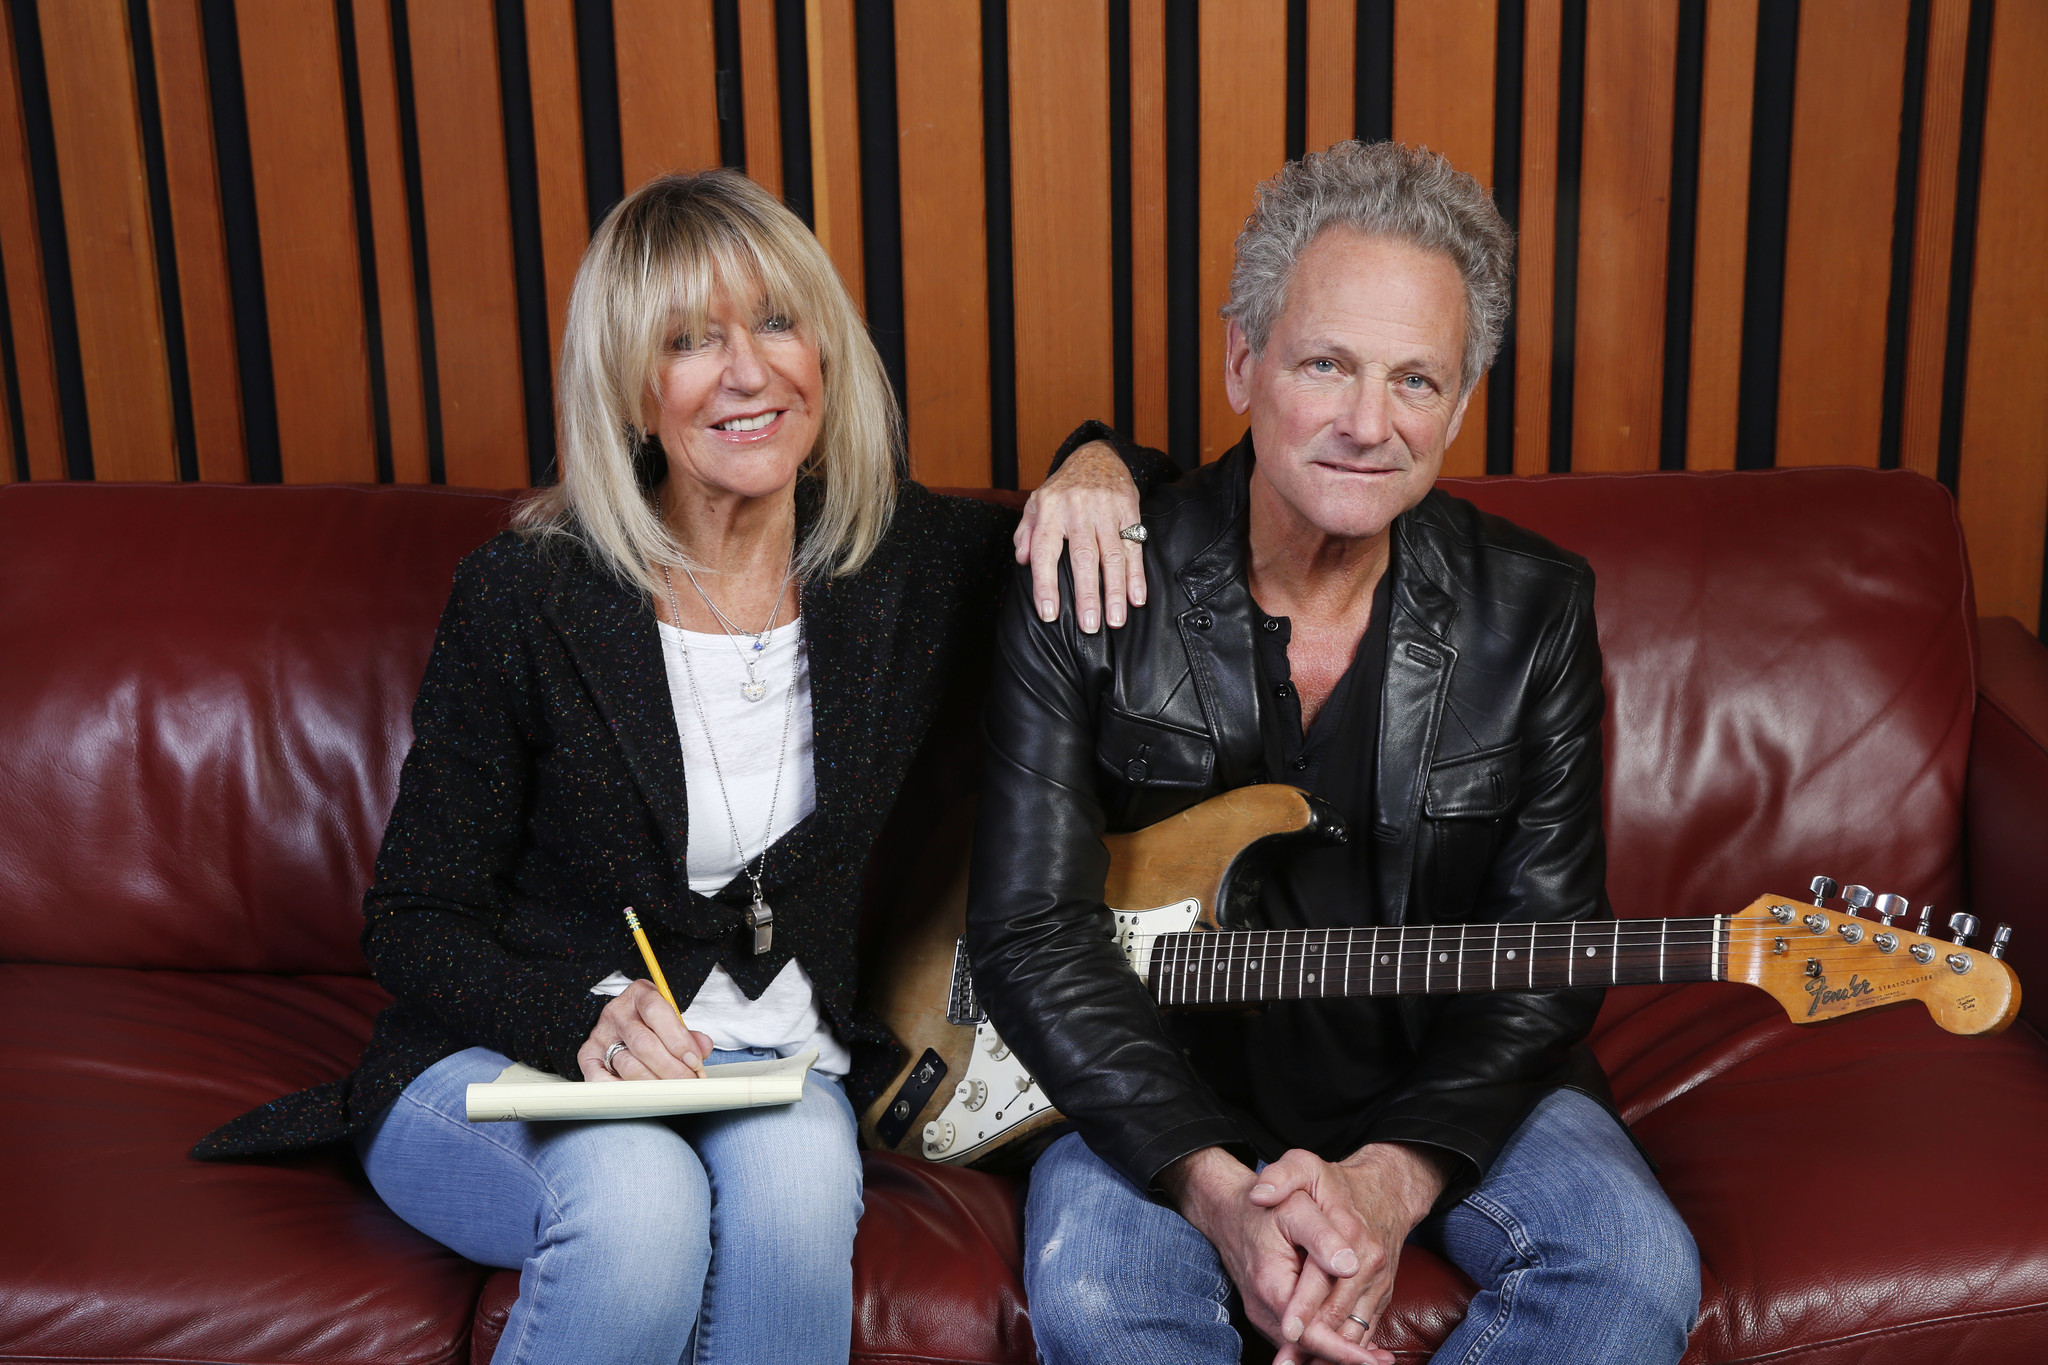 la-ca-ms-lindsey-buckingham-christine-mcvie-20170113